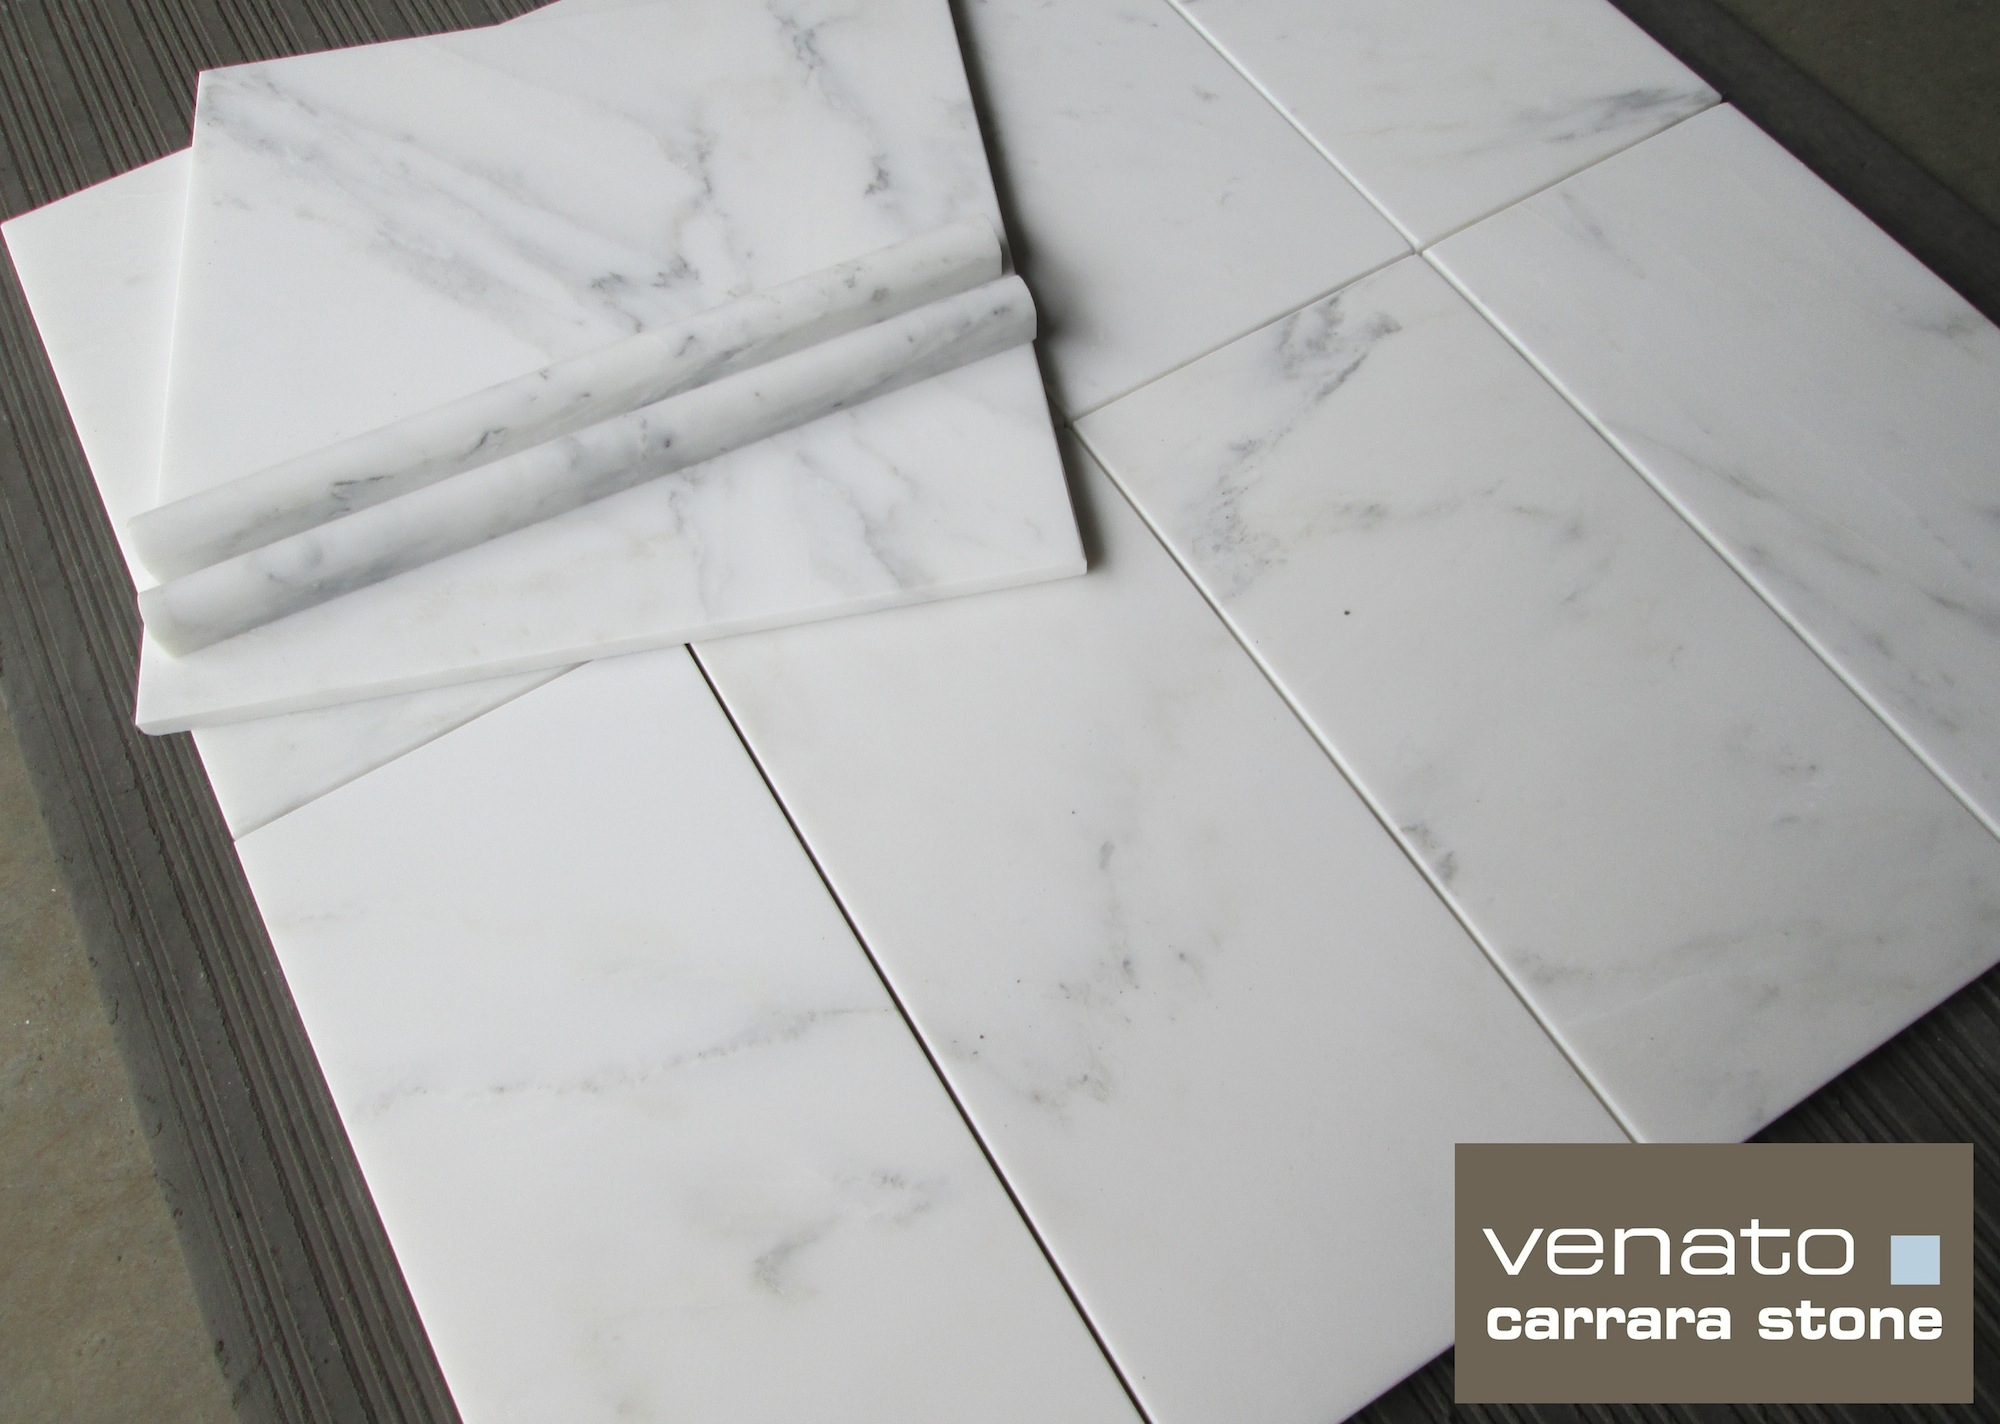 Venato Carrara 1212 And 612 Marble Tile 700sf The Builder